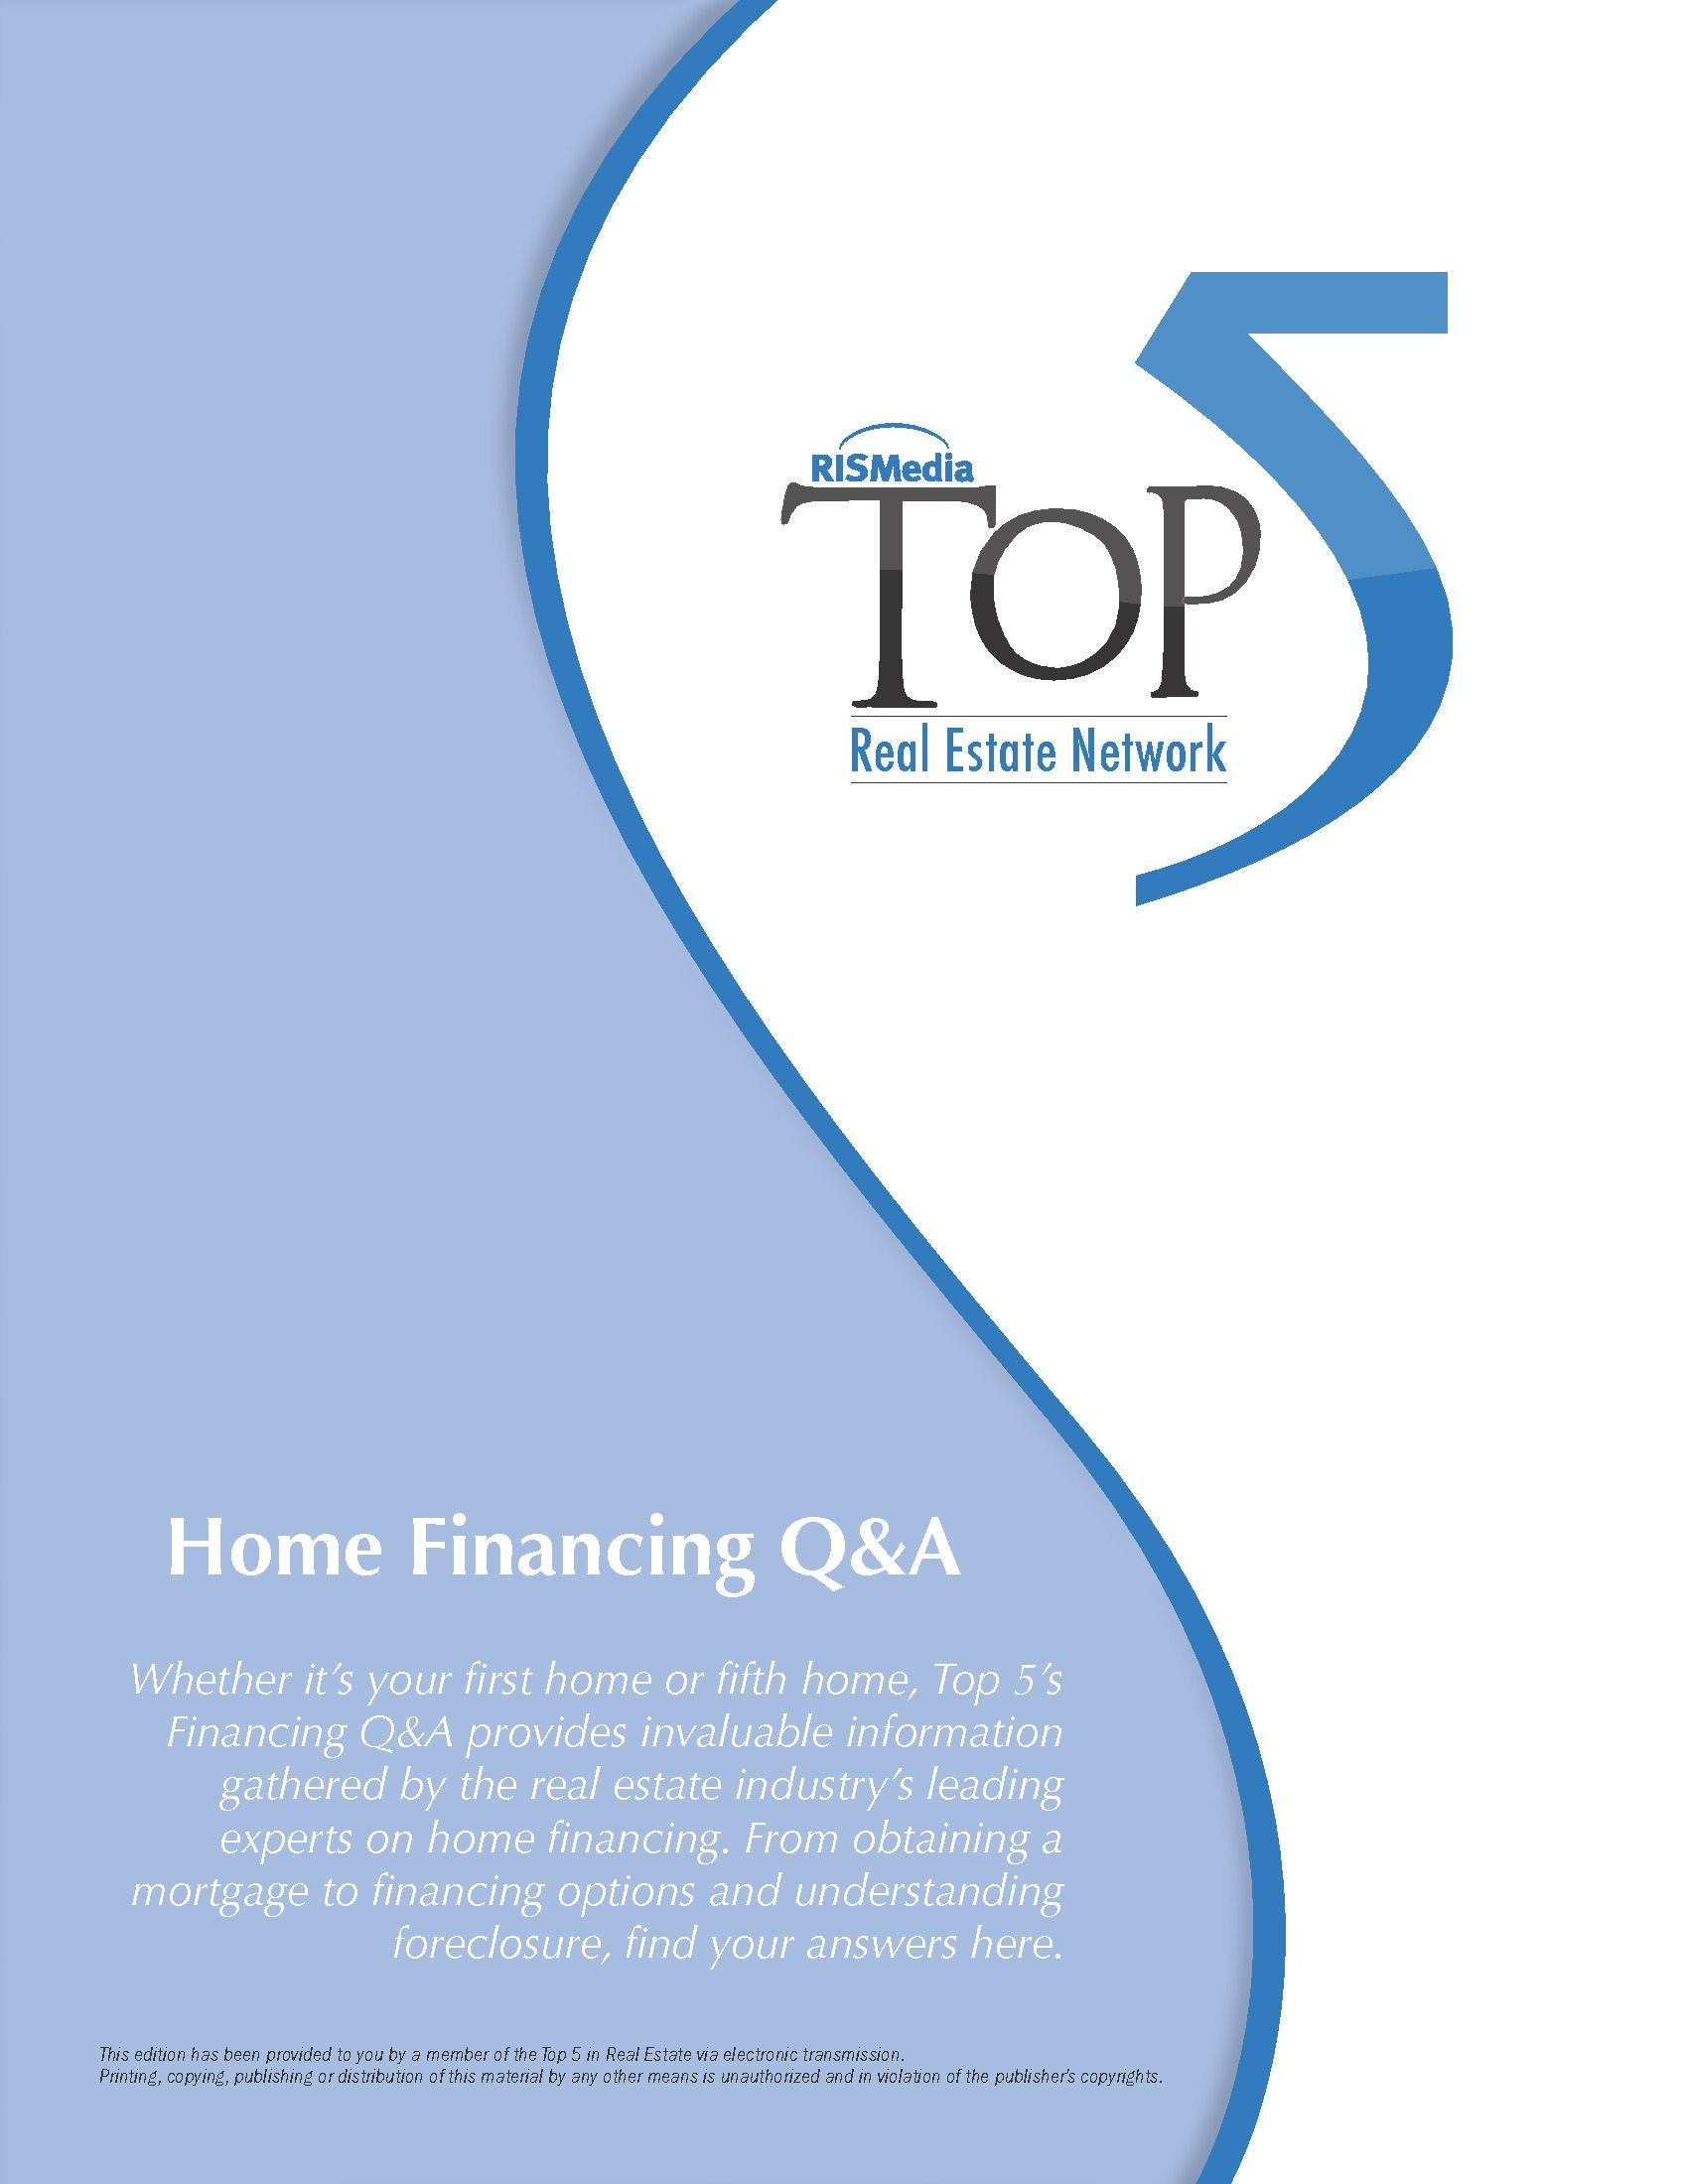 Rismedia S Top 5 In Real Estate Q A Includes Invaluable Information Gathered By The Real Estate Industry S Leading Experts On Home Finance Home Financing Real